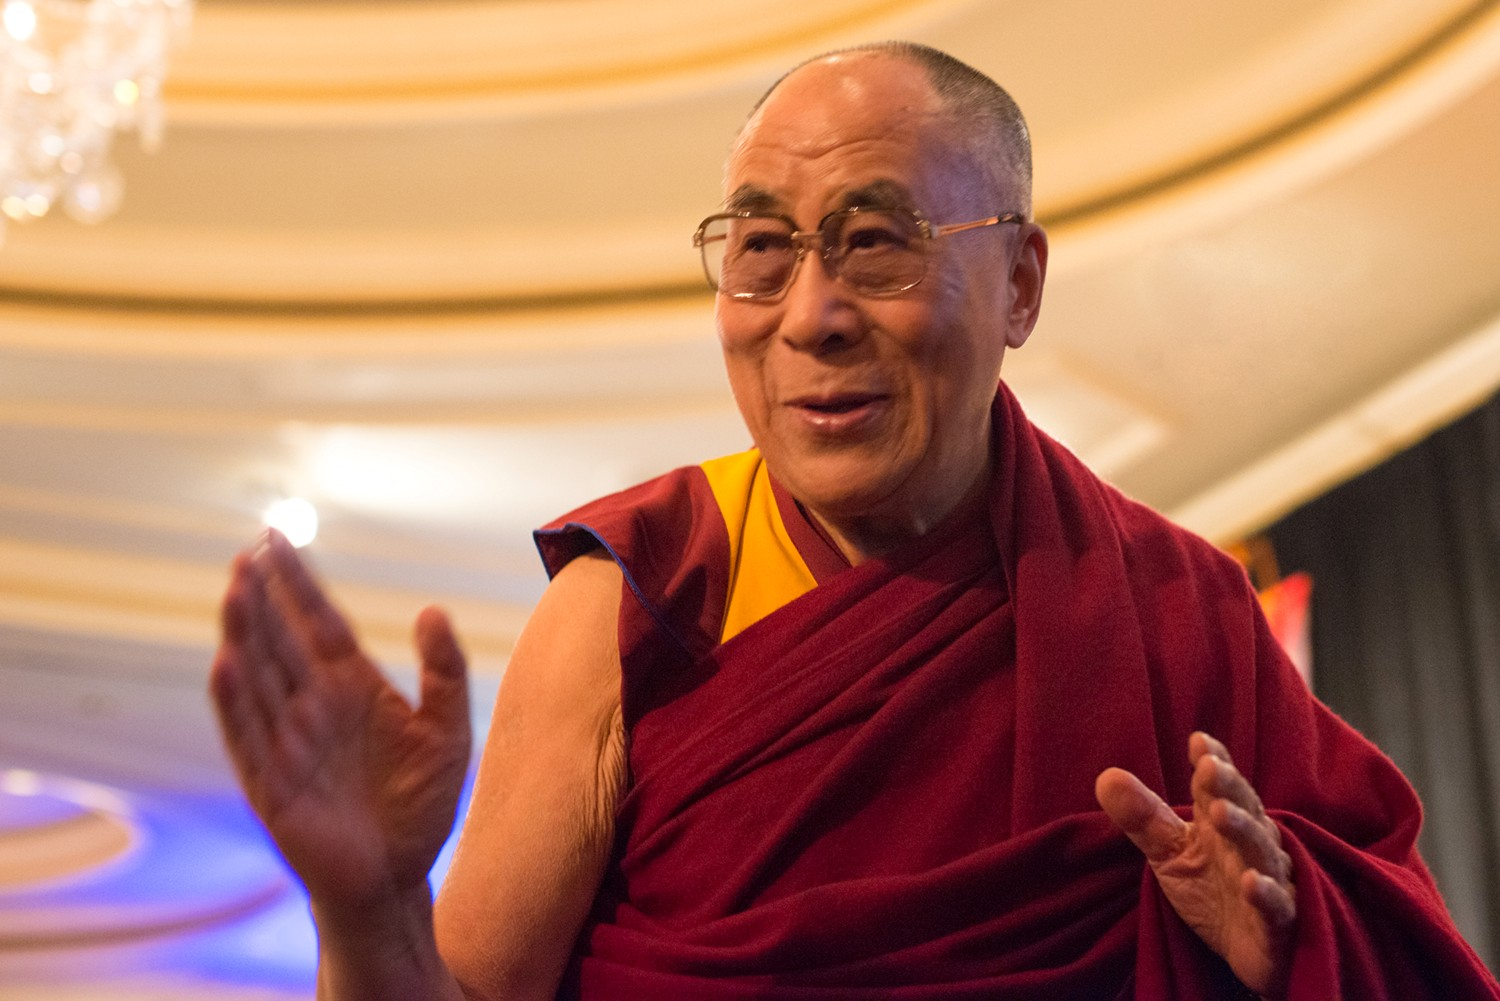 Dalai Lama in stable condition after being hospitalized due to chest infection